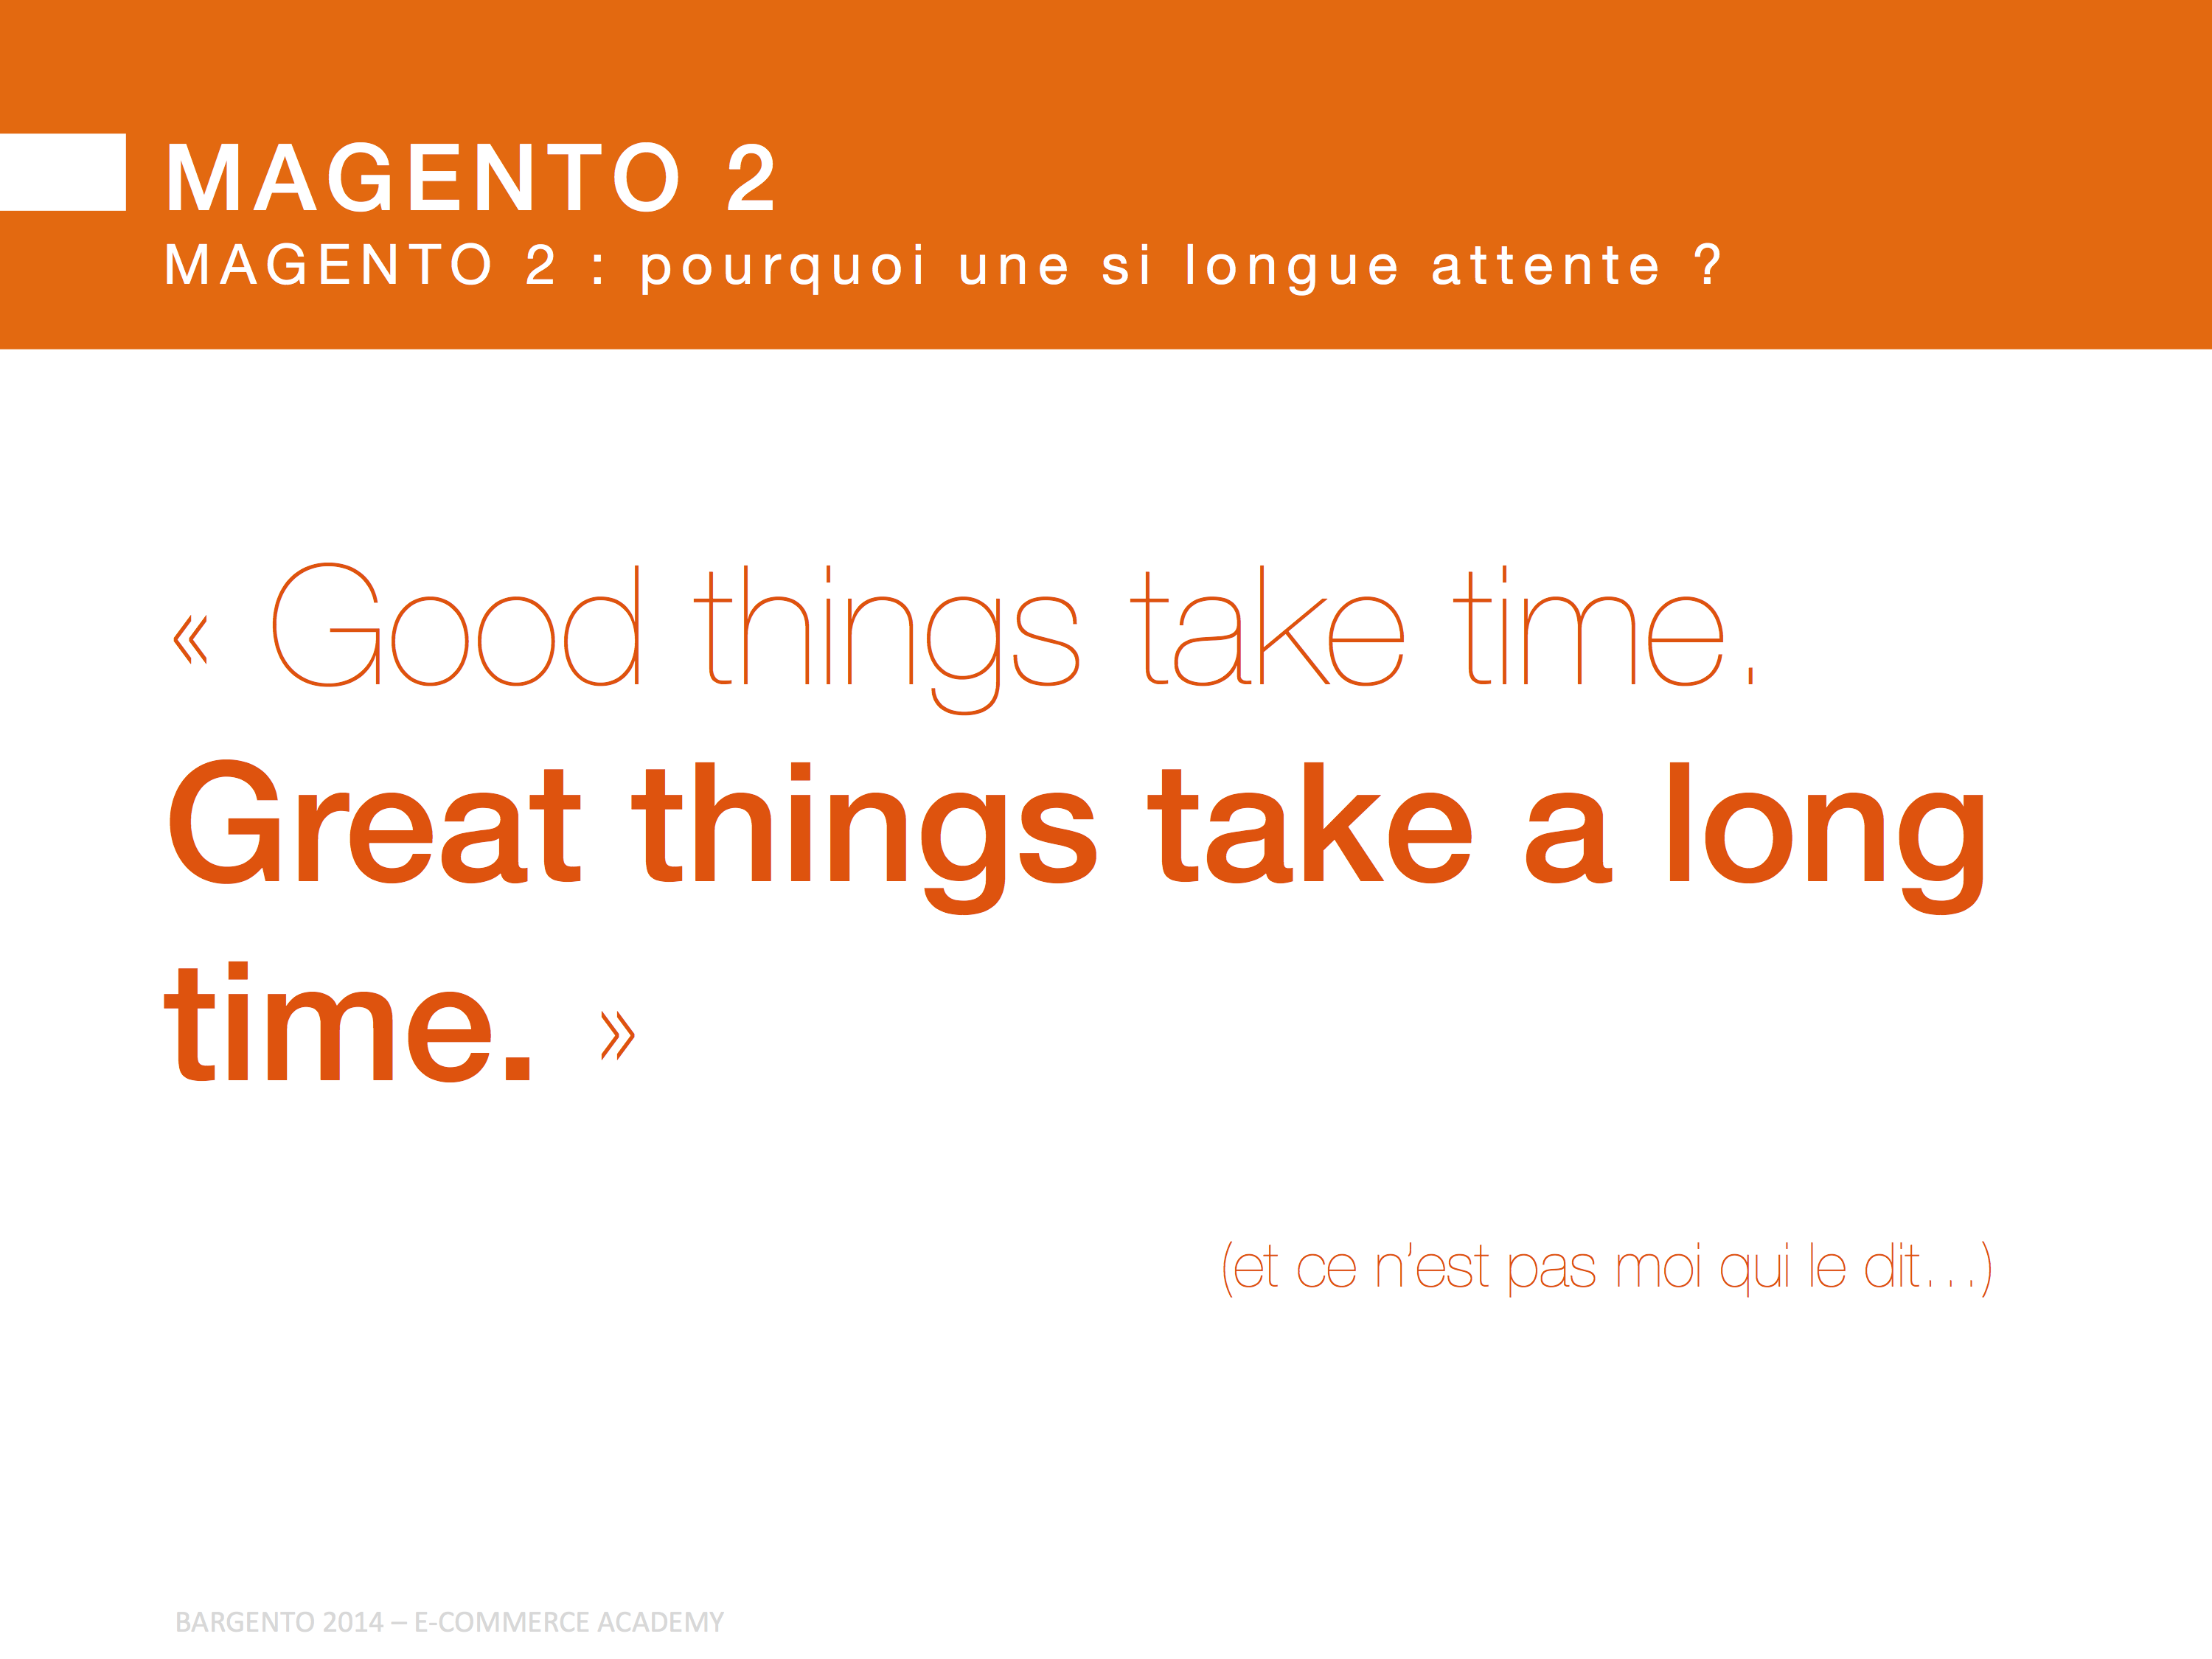 magento-2-is-to-migrate-or-not-to-migrate-the-right-question-good-things-take-time